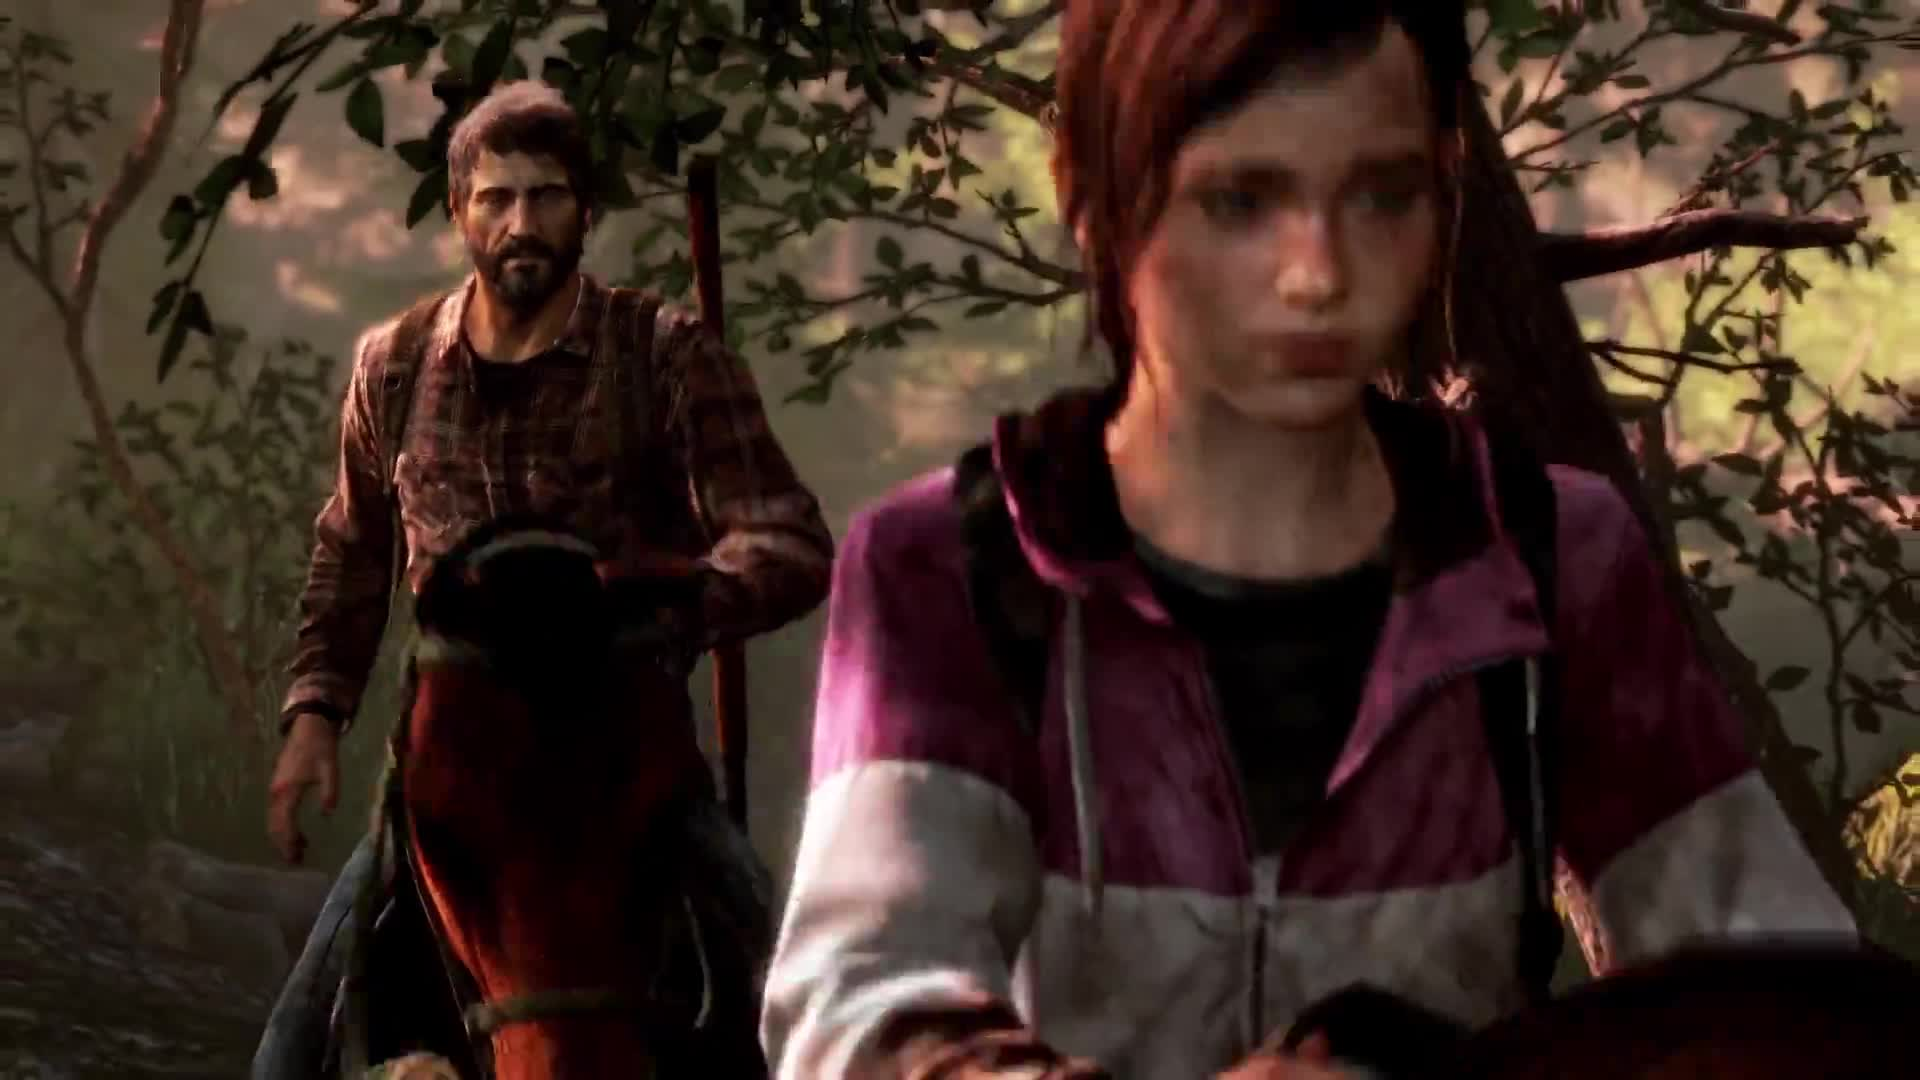 The Last of Us: Remastered - PS4 trailer